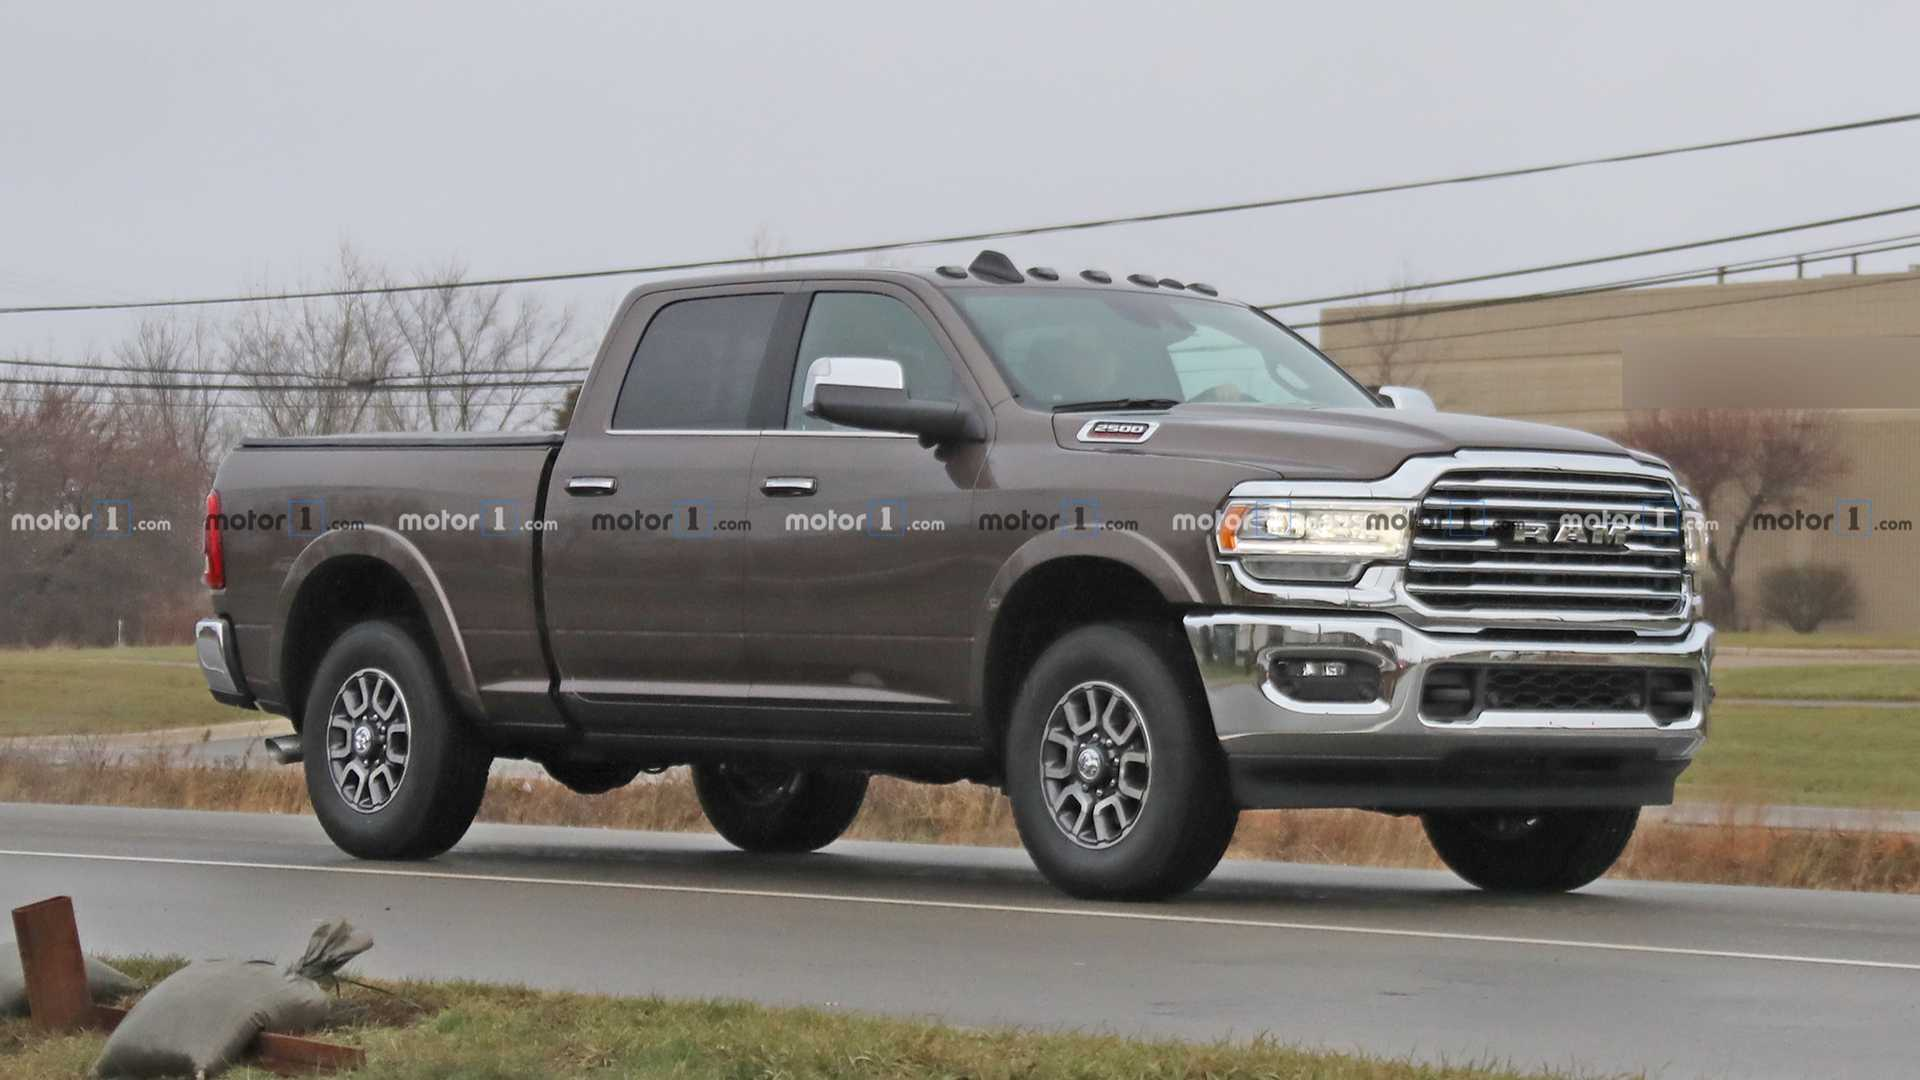 60 Best Review Dodge Ram 2500 Diesel 2020 Exterior with Dodge Ram 2500 Diesel 2020